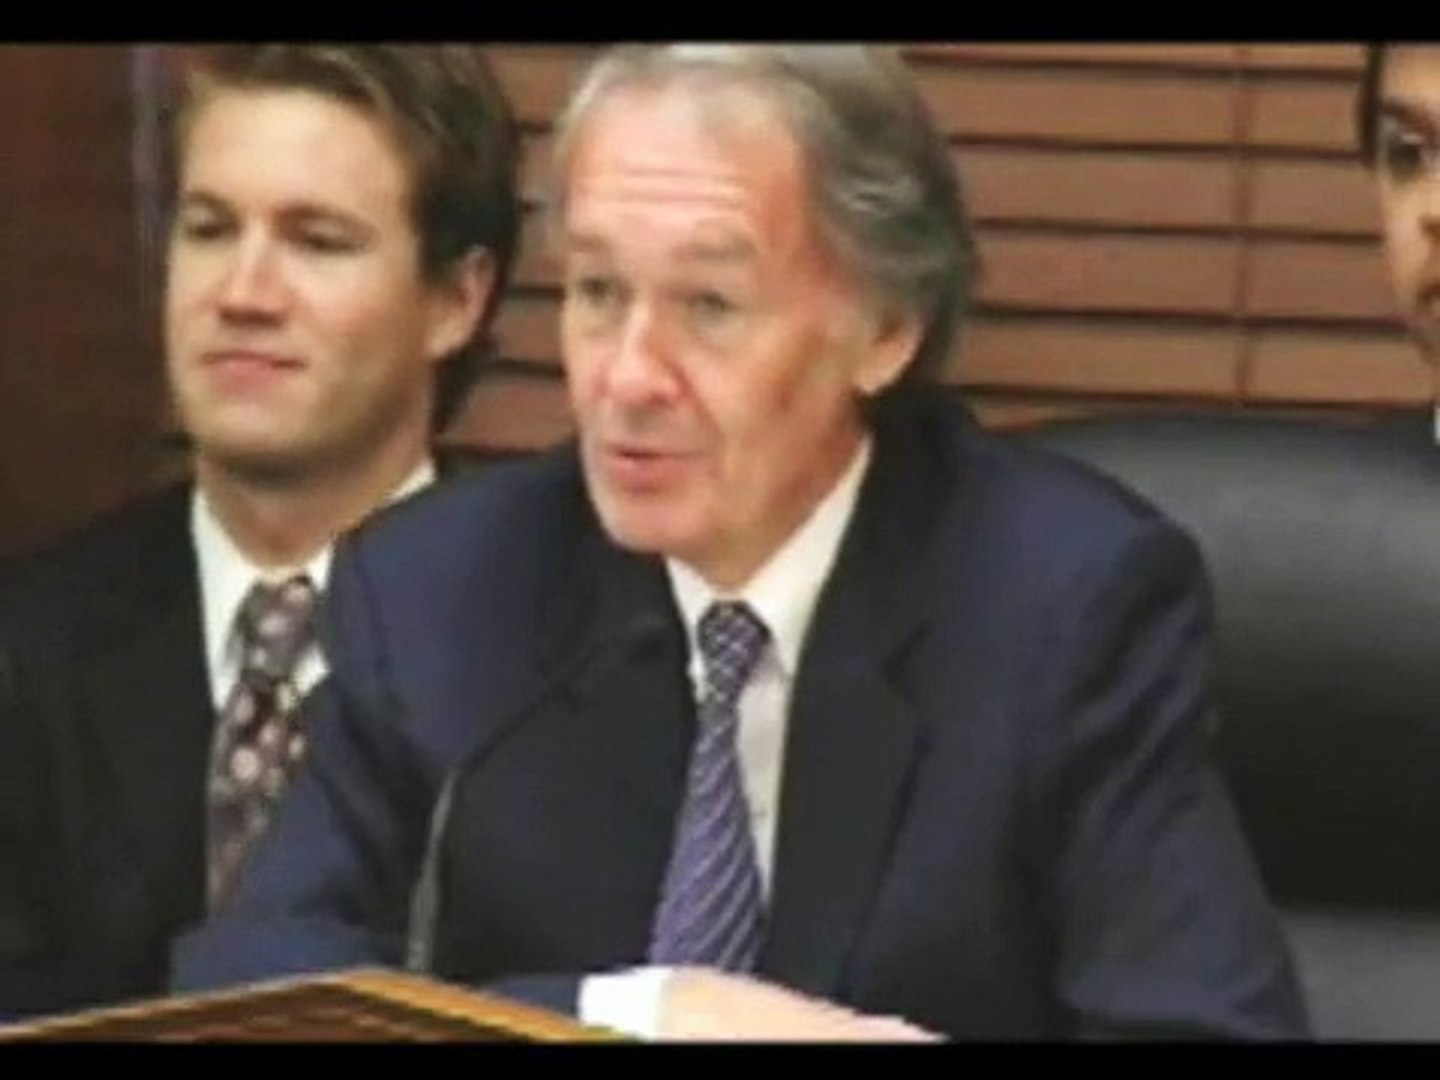 Prof. Gabriel Calzada and Congressman Edward Markey Square Off